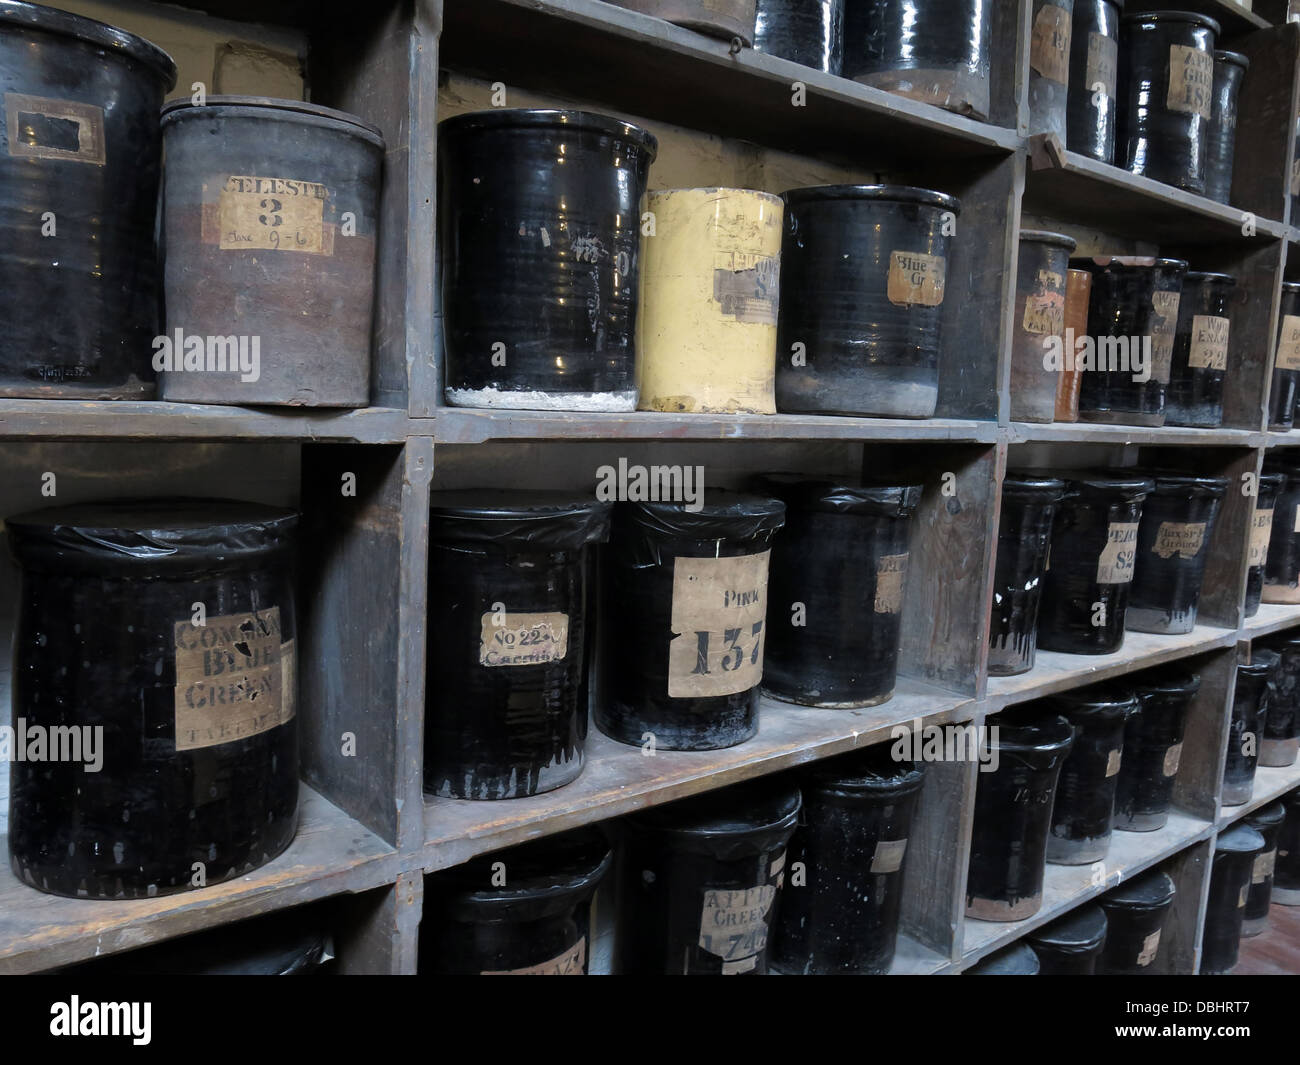 Image from colour room Longton Stoke-On-Trent Great Britain showing potteries heritage at the Gladstone Pottery - Stock Image